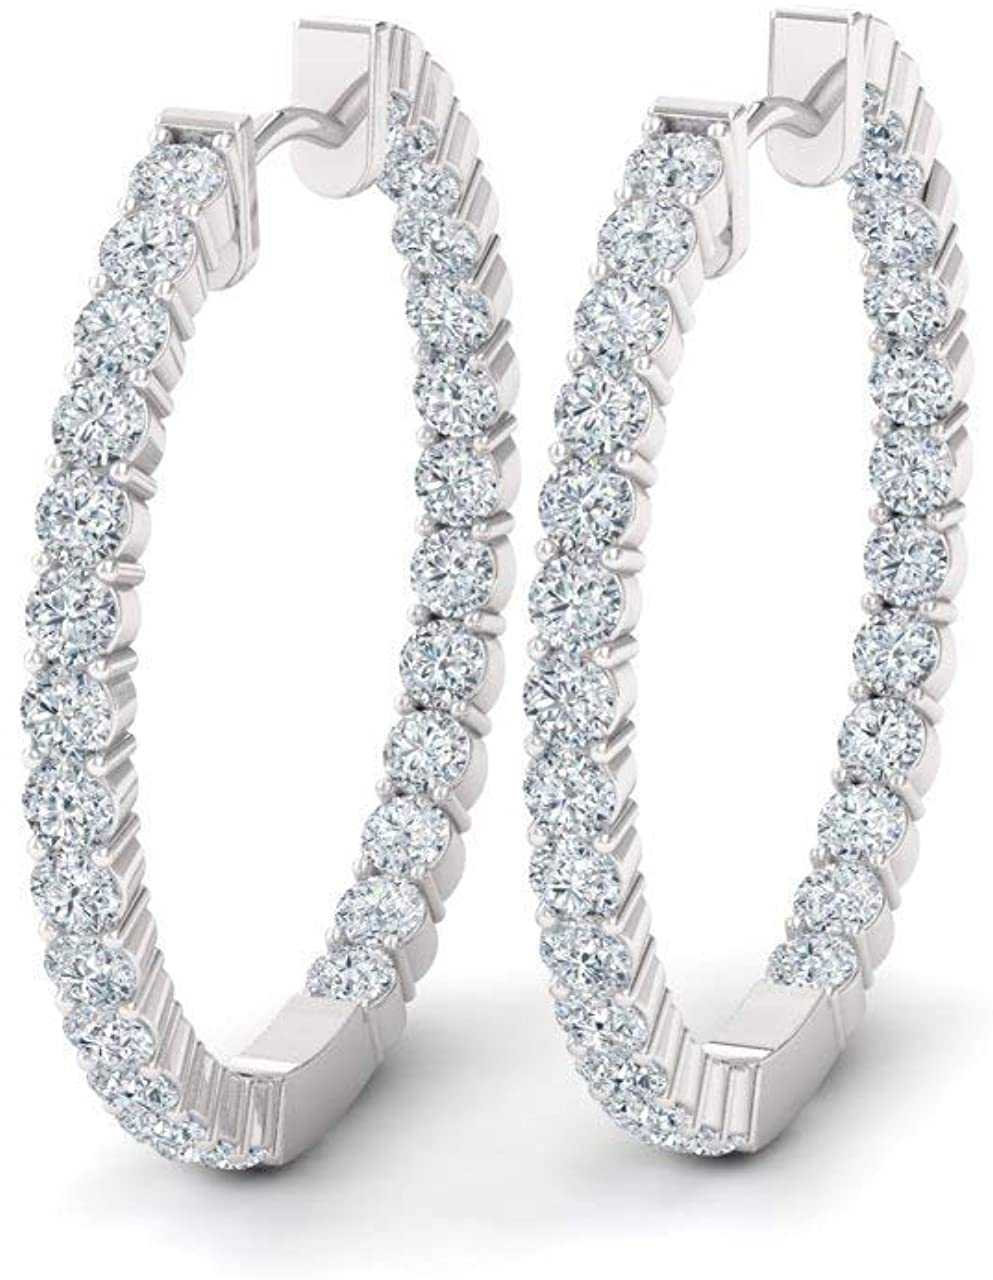 Diamondere Natural and Certified Diamond Huggies Earrings in 14K White Gold | 1.08 Carat Inside Outside Earrings for Women